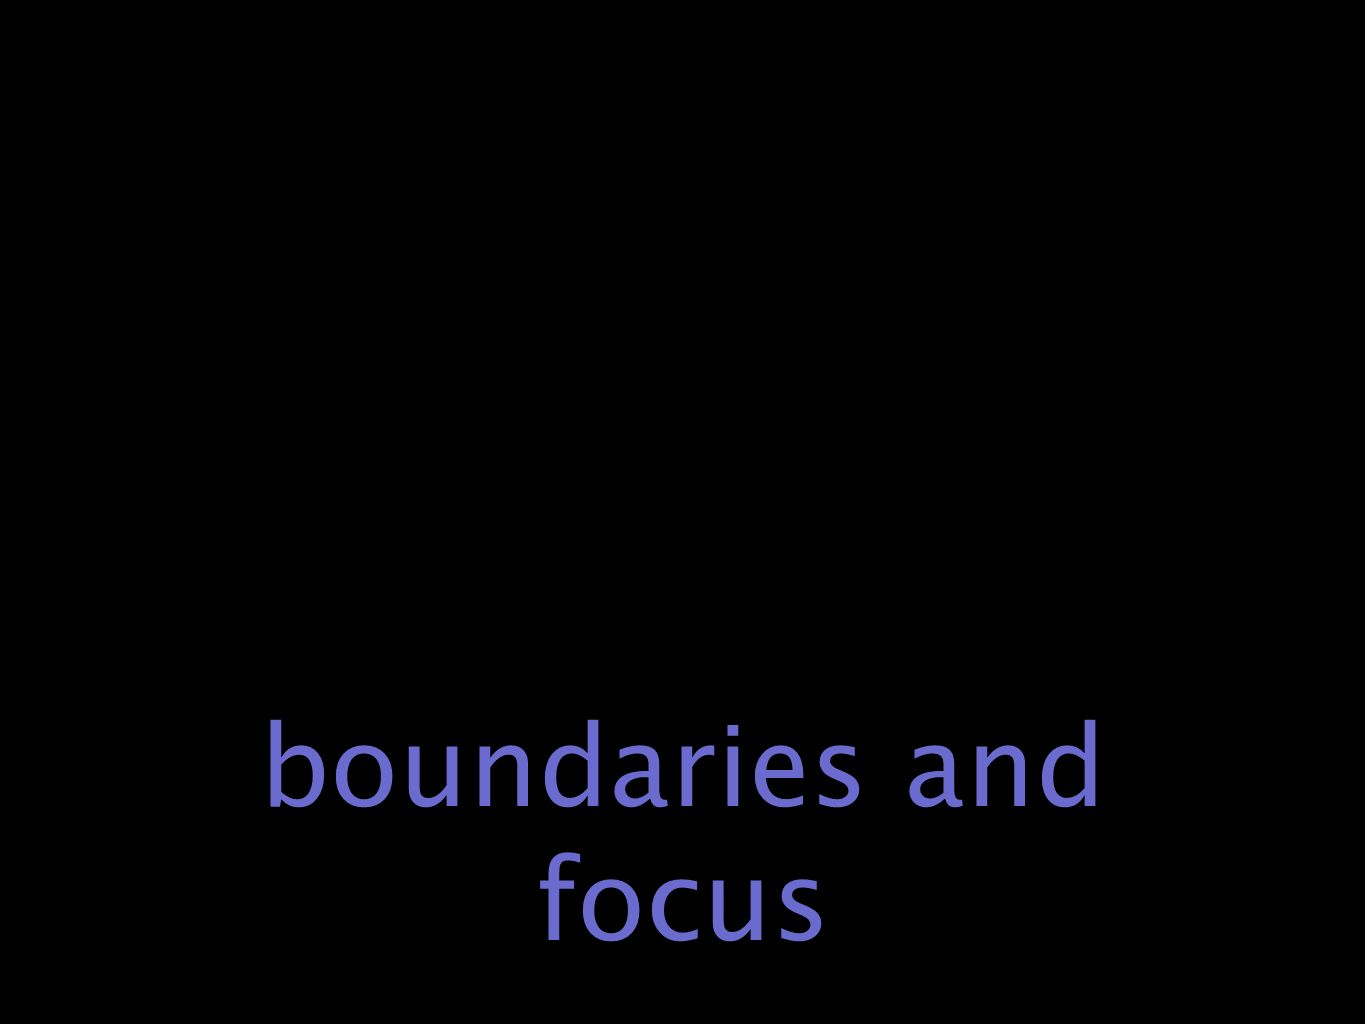 boundaries and focus